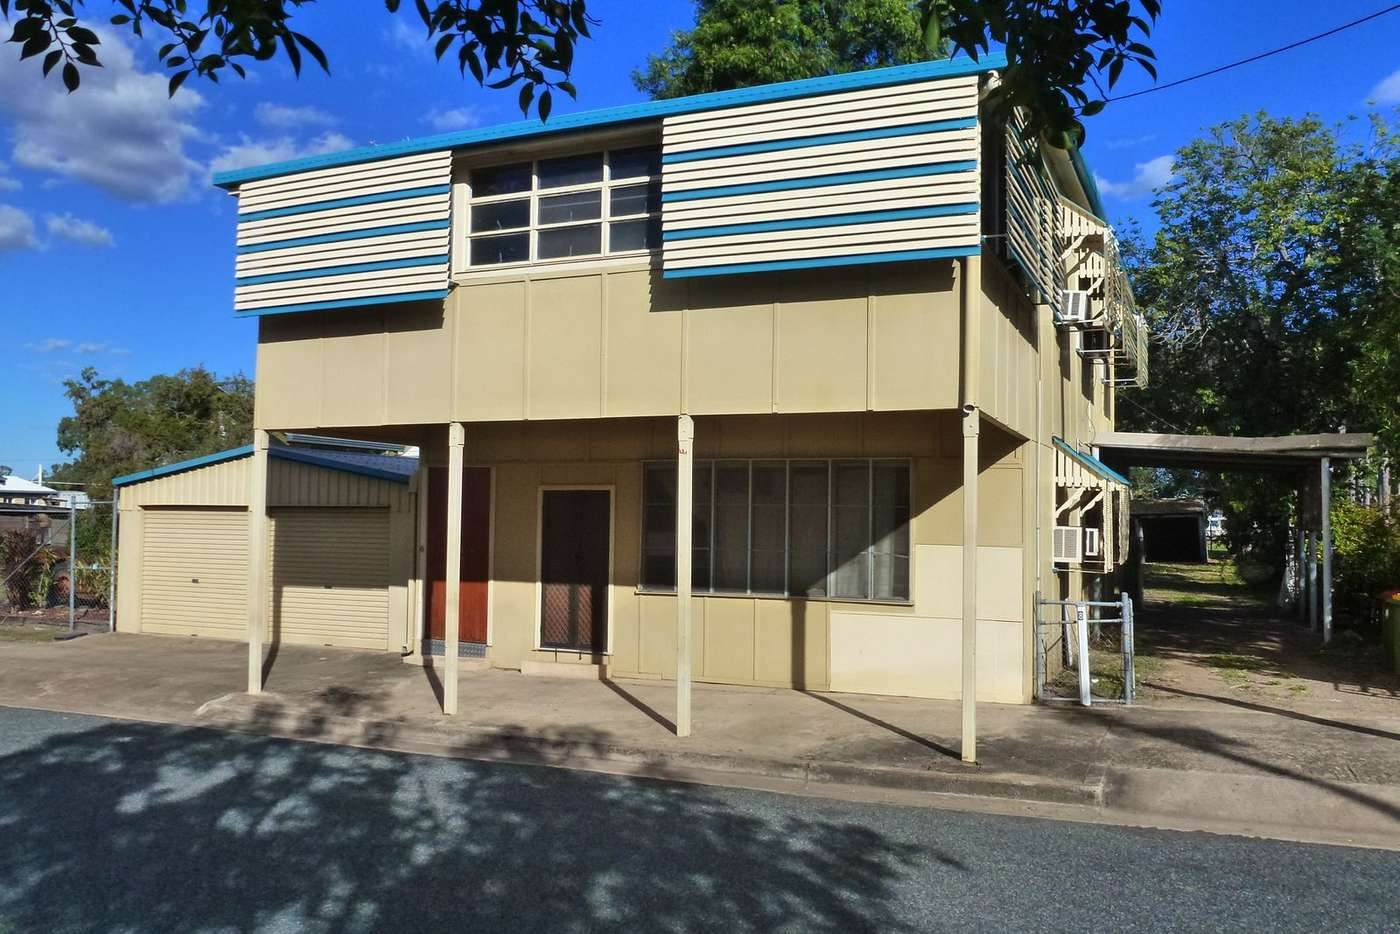 Main view of Homely house listing, 8 Reynolds Street, Nebo QLD 4742